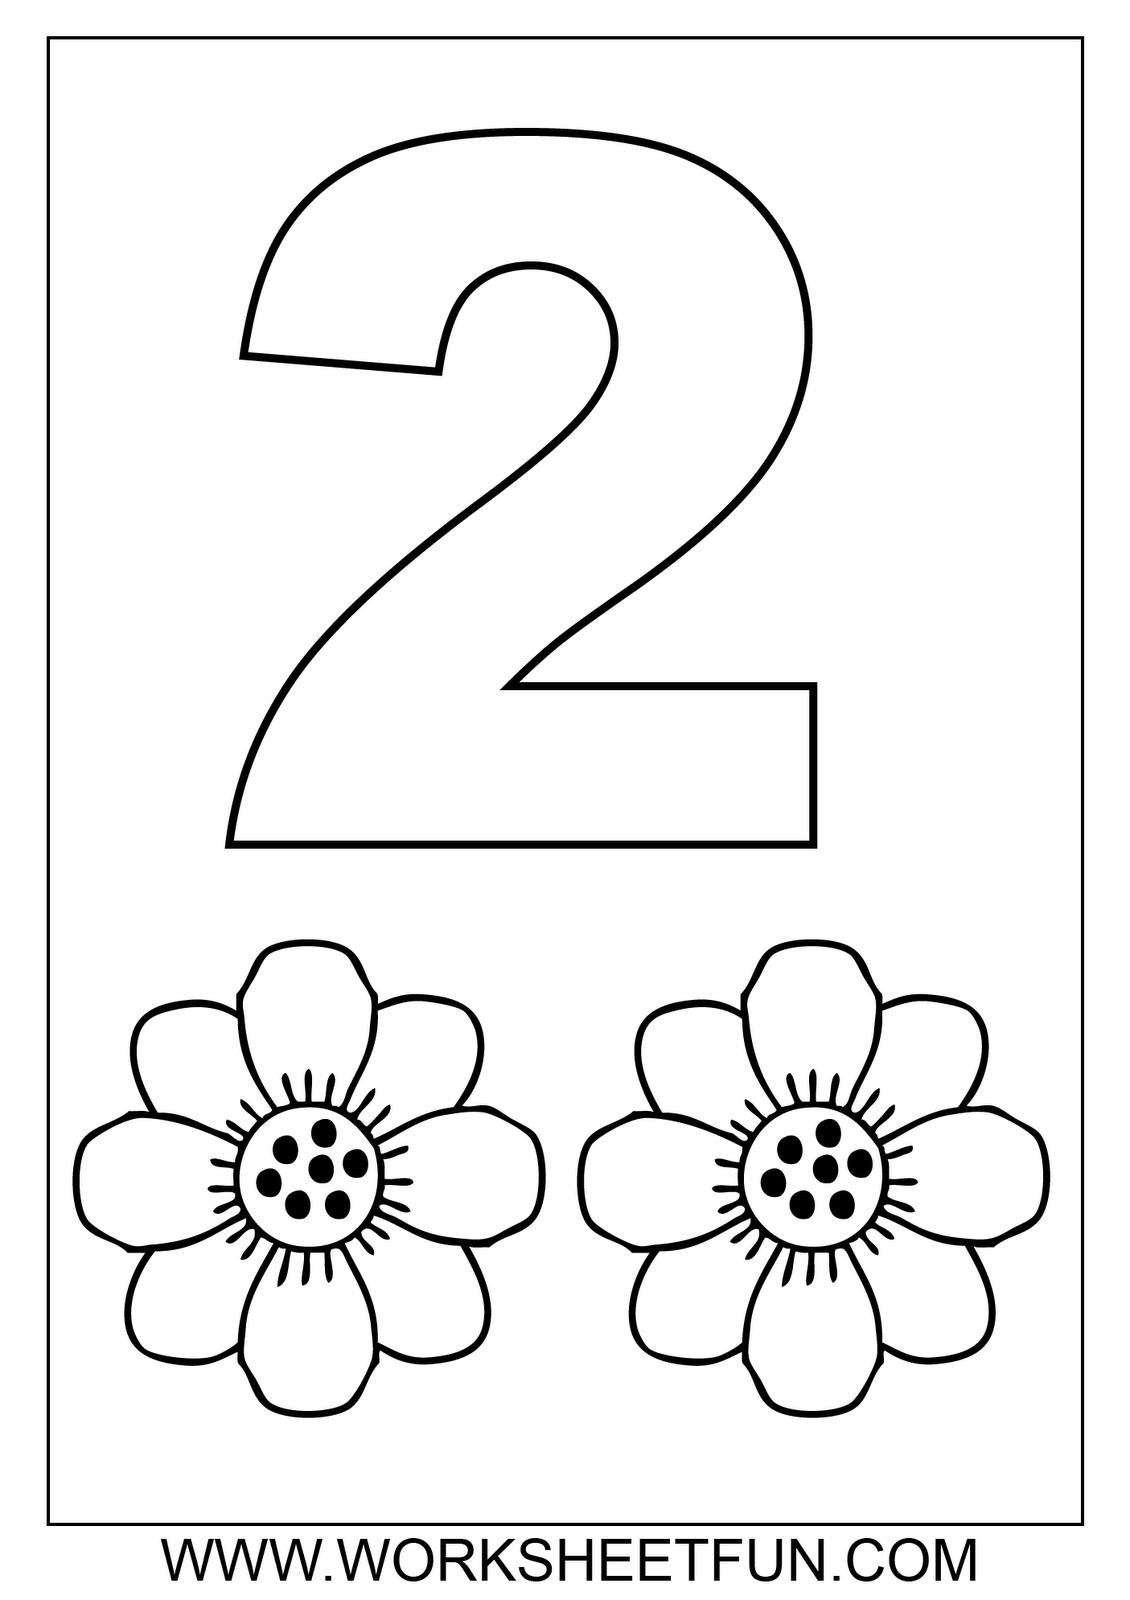 number coloring pages free printable - photo#33